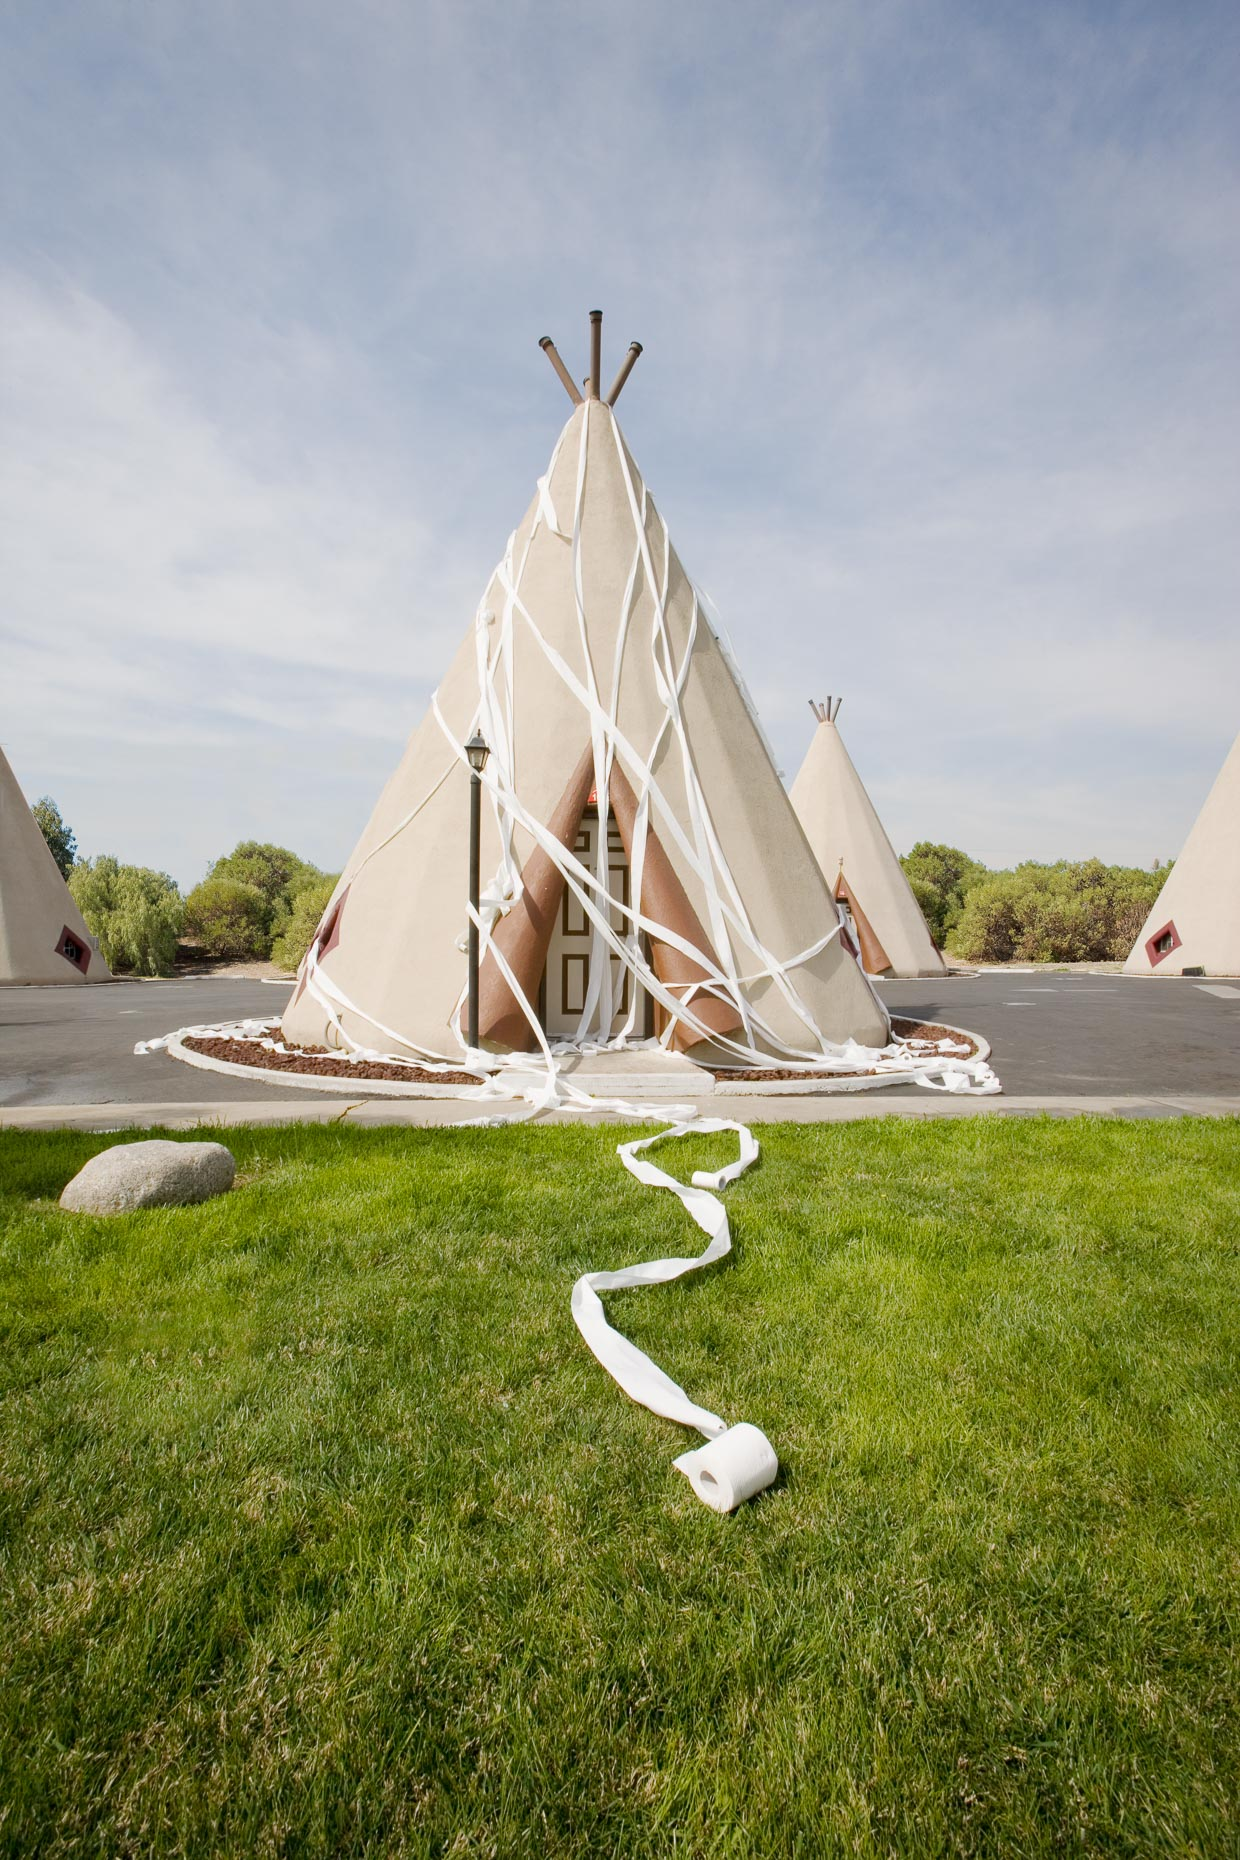 Toilet paper draped over teepee wigwam motel unit by David Zaitz